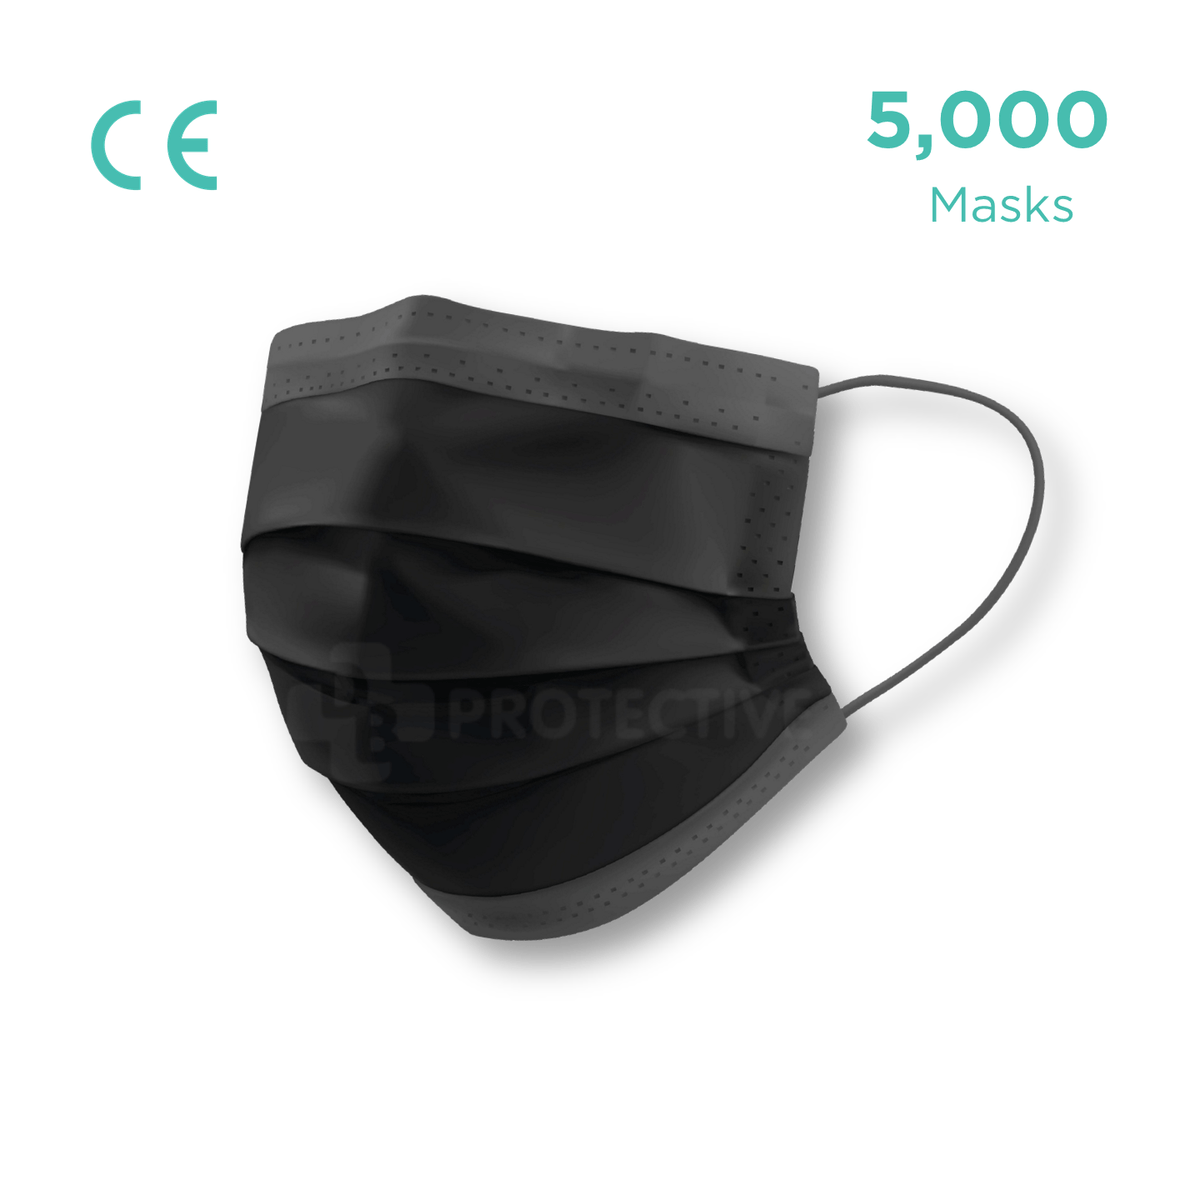 3-Ply Black Disposable Surgical Civil Face Mask (Level 1) - Pack of 5,000 - USA Medical Supply - DB Protective